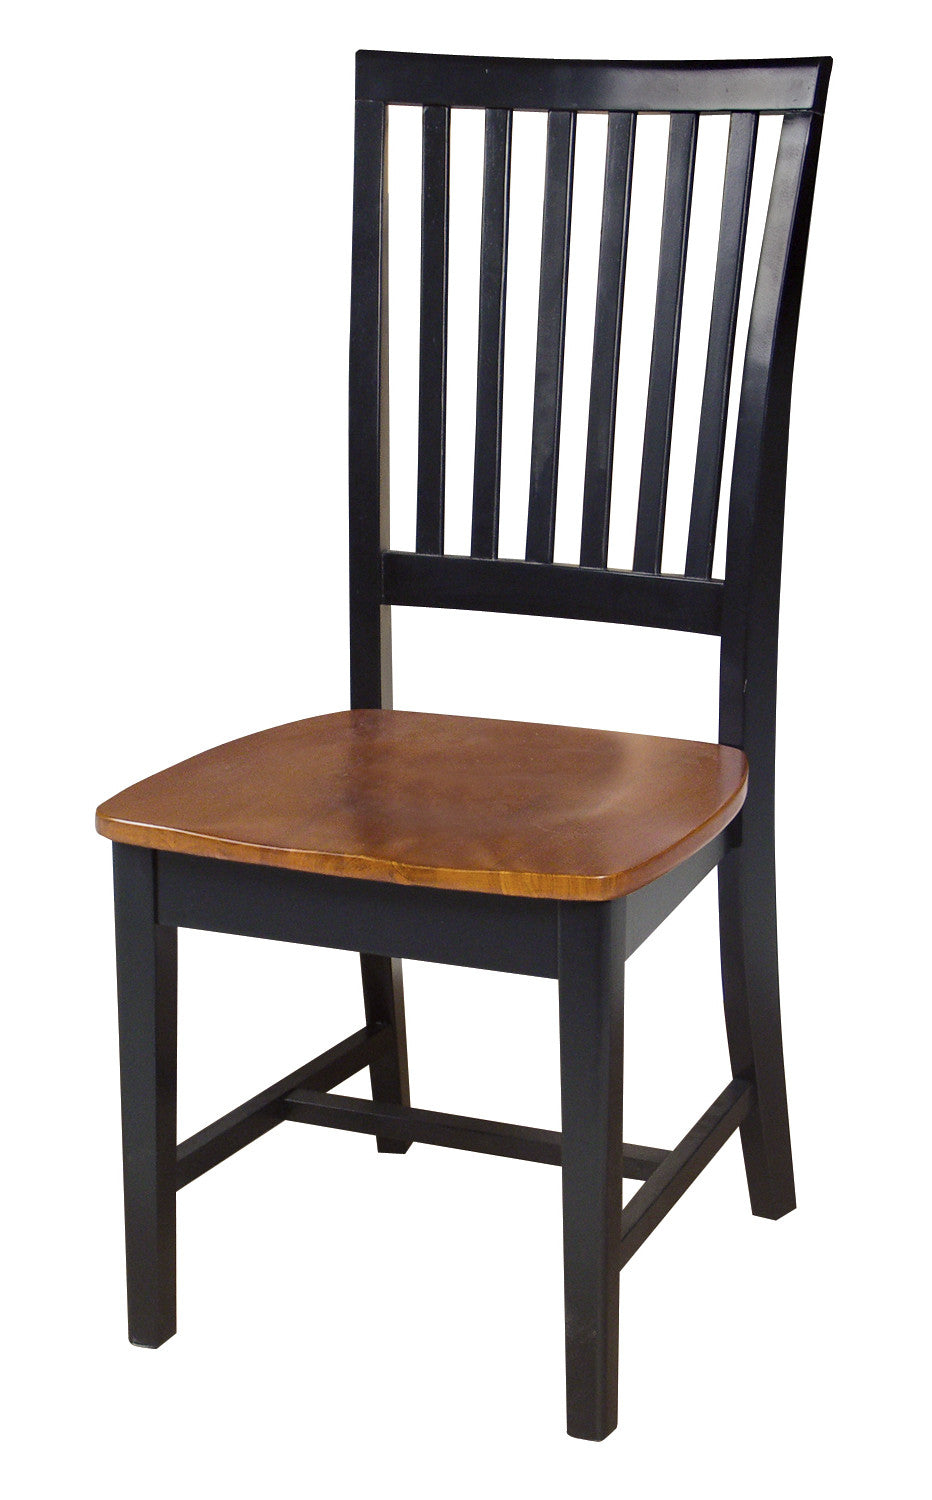 Mission Hardwood Dining Side Chair 2 Pack Free Shipping  : C57 265 from unfinishedfurnitureexpo.com size 932 x 1500 jpeg 121kB